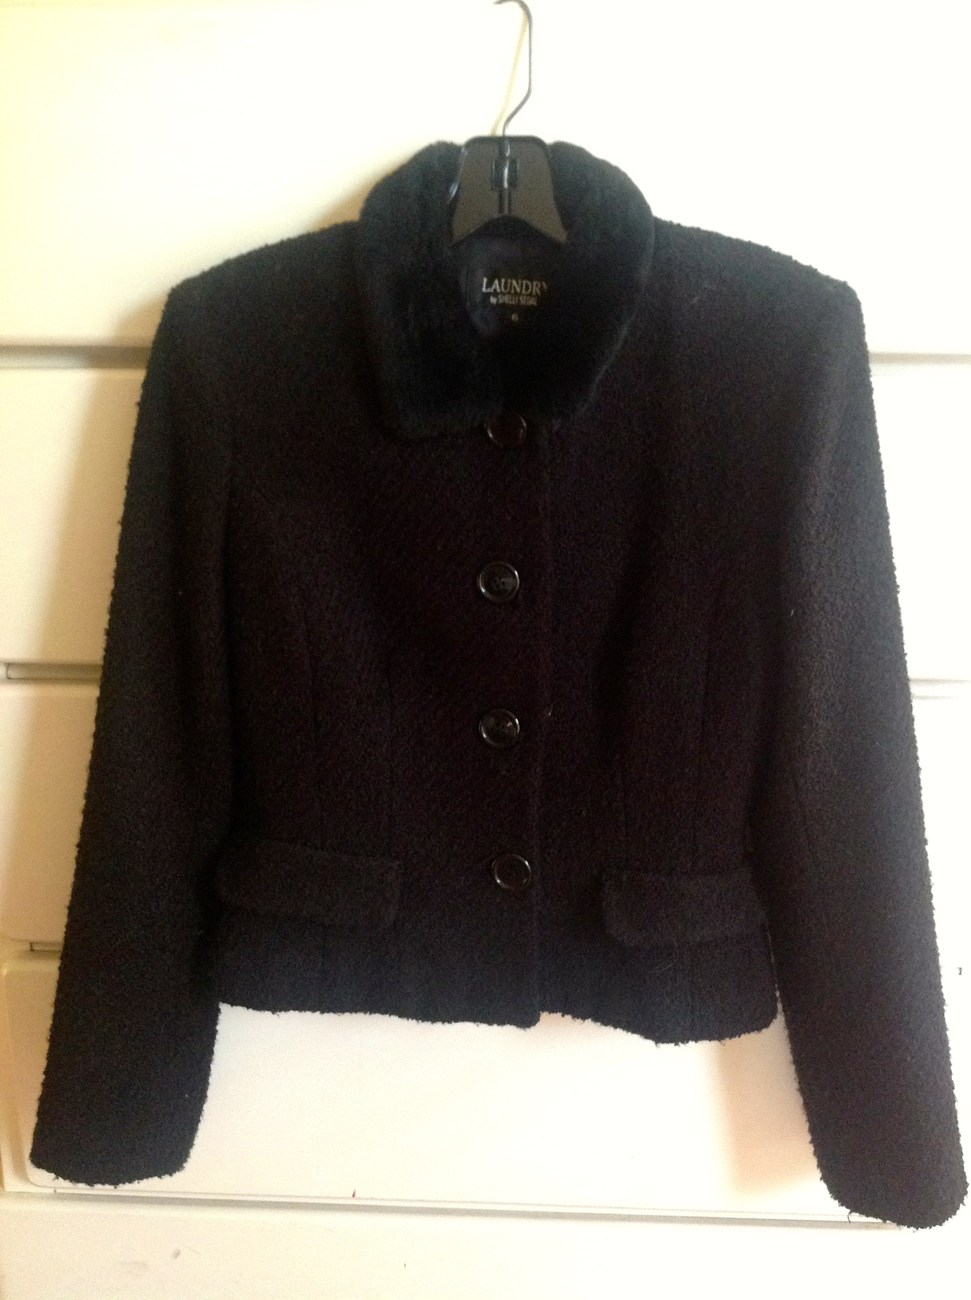 Primary image for Laundry boucle jacket black size 6